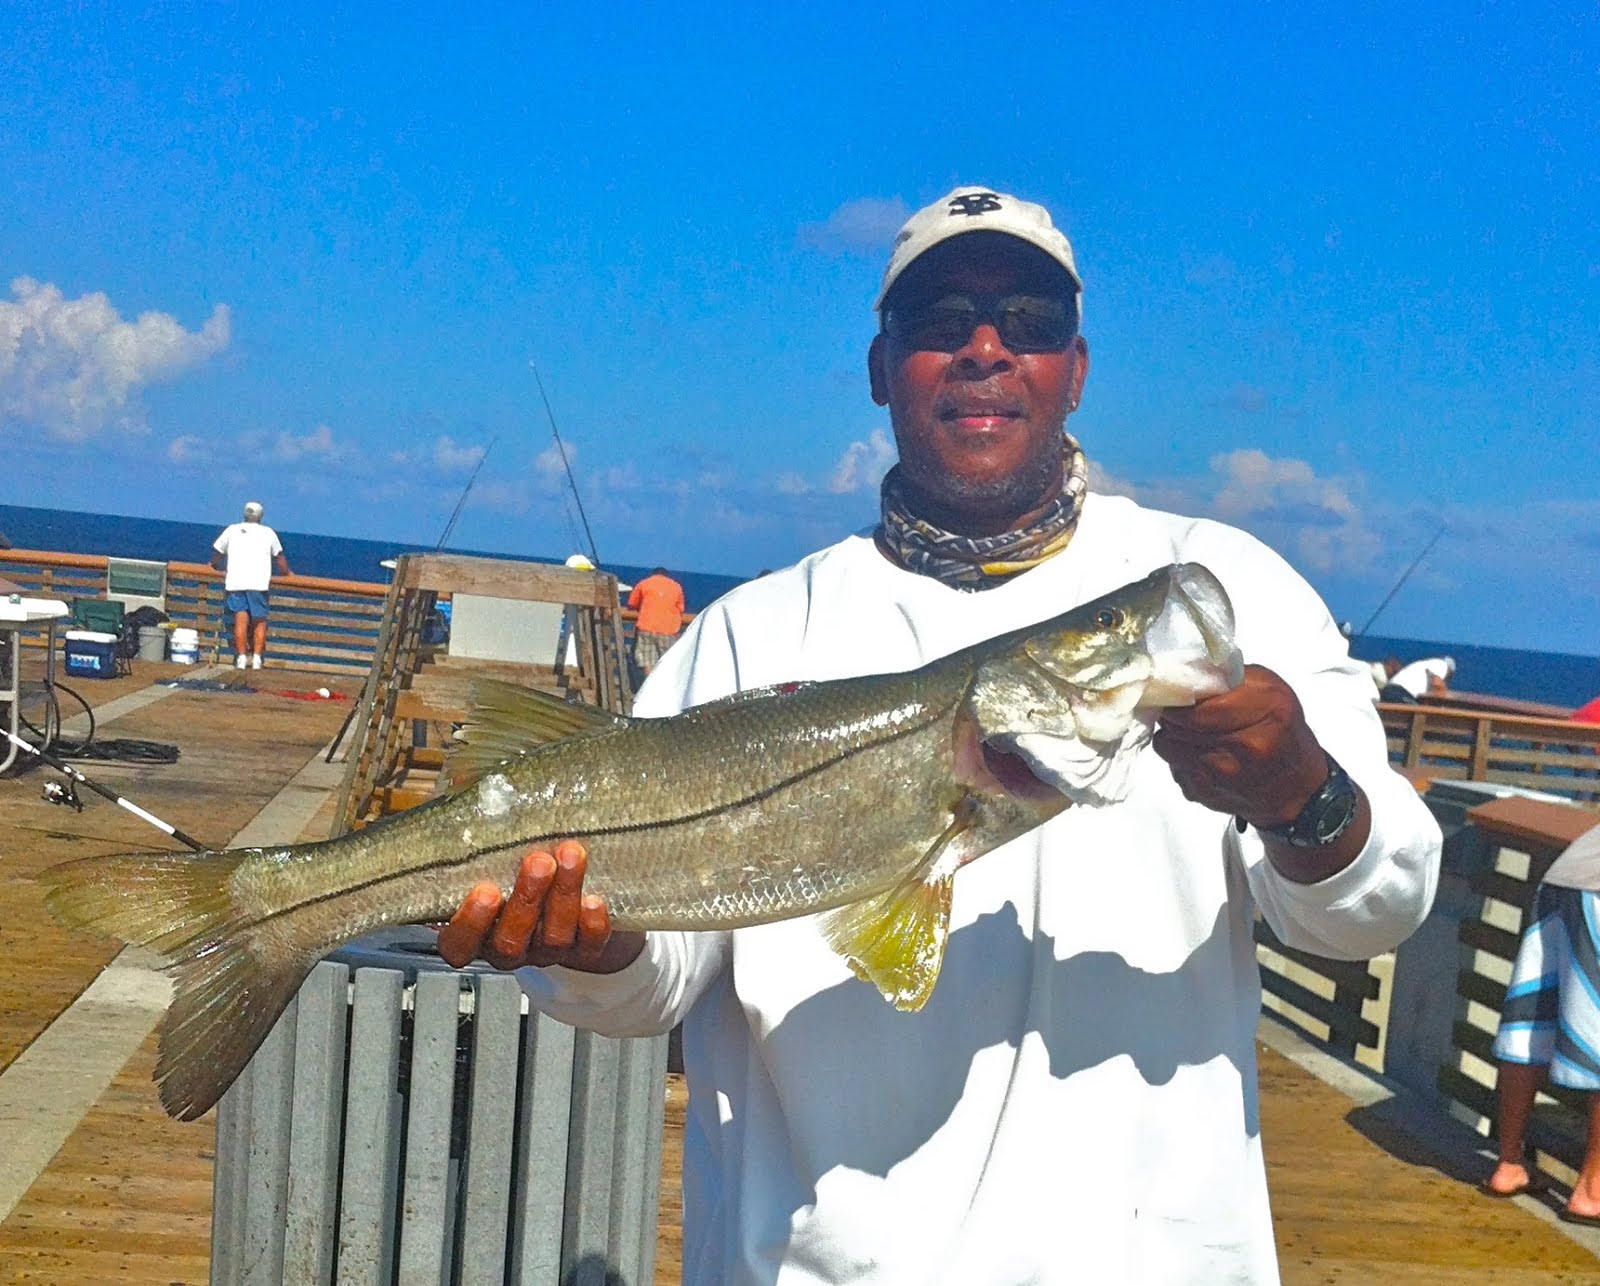 On foot angler from todd eric juno bait juno beach for Juno pier fishing report